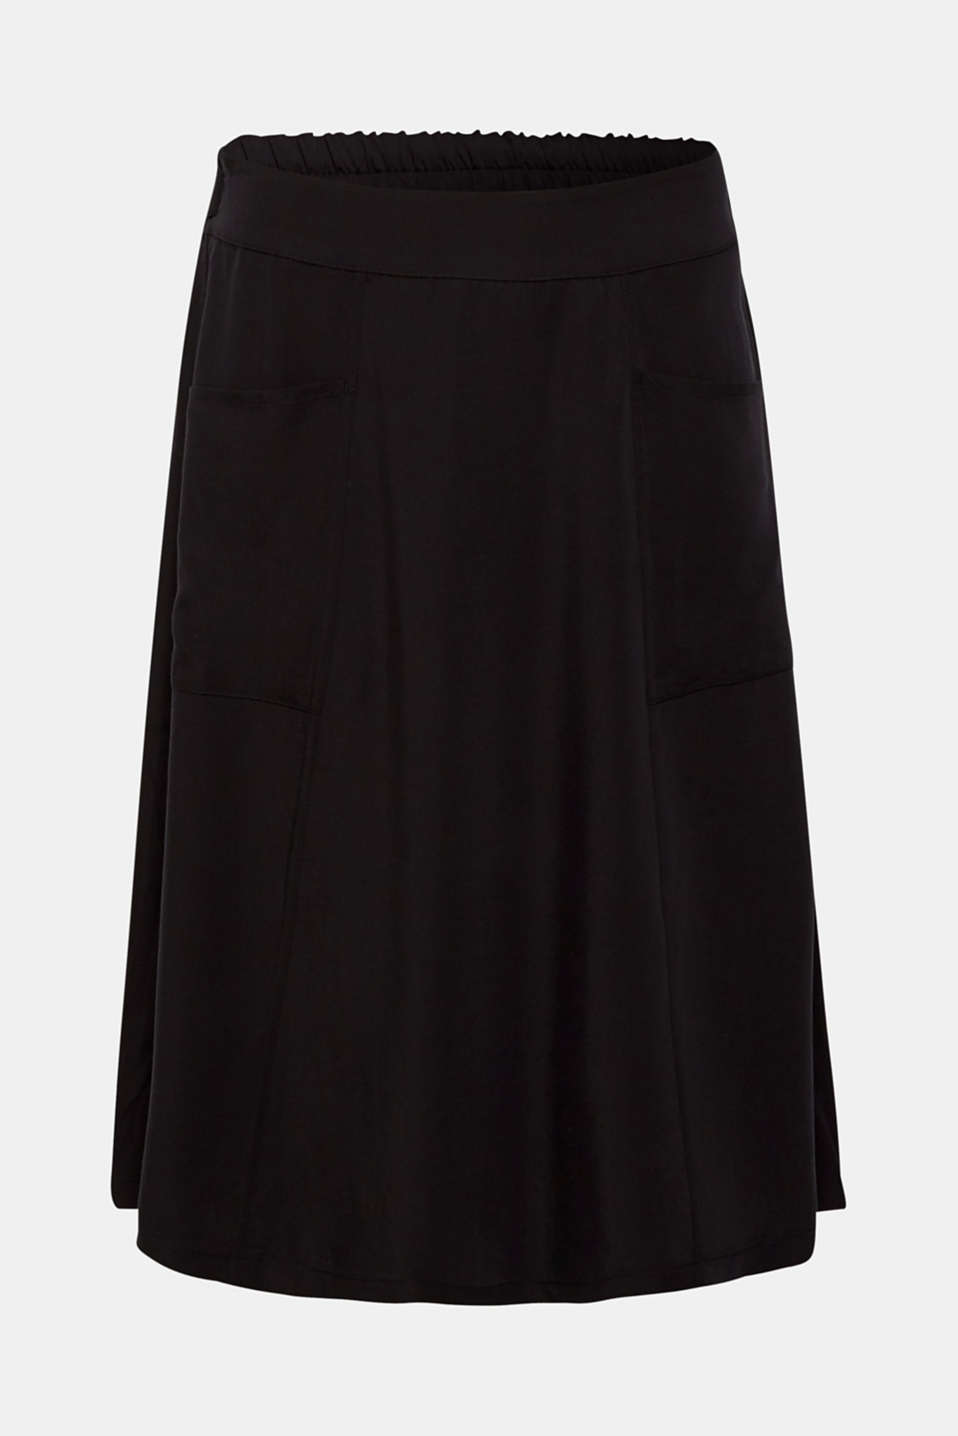 A-line skirt with pockets, 100% lyocell, BLACK, detail image number 6